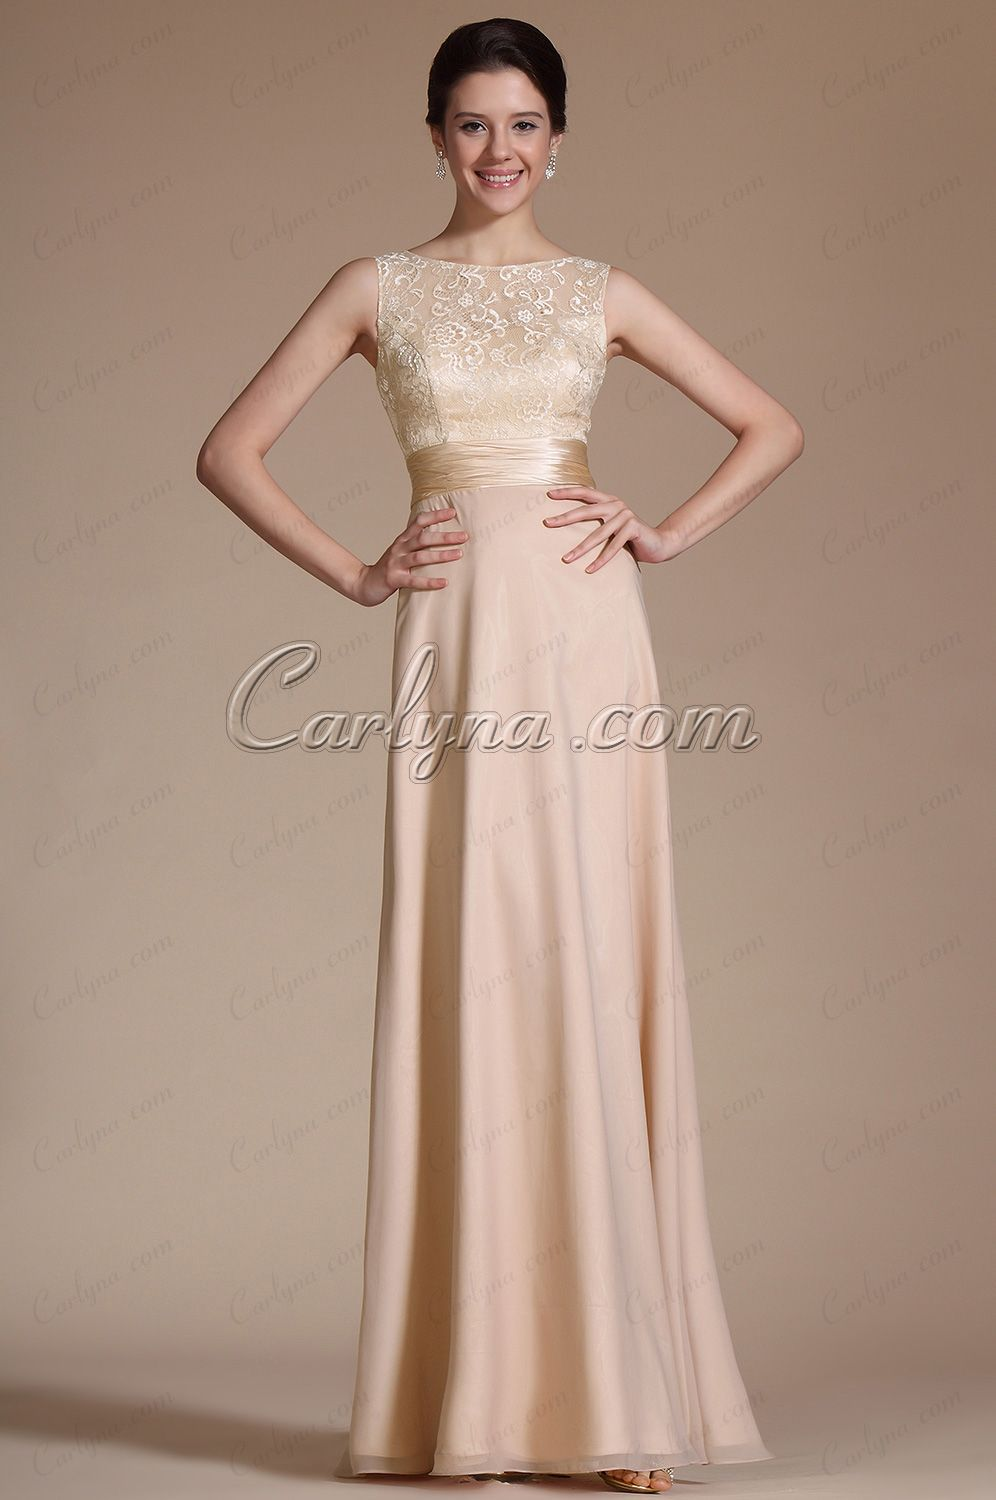 Carlyna new sleeveless lace top evening dress prom gown